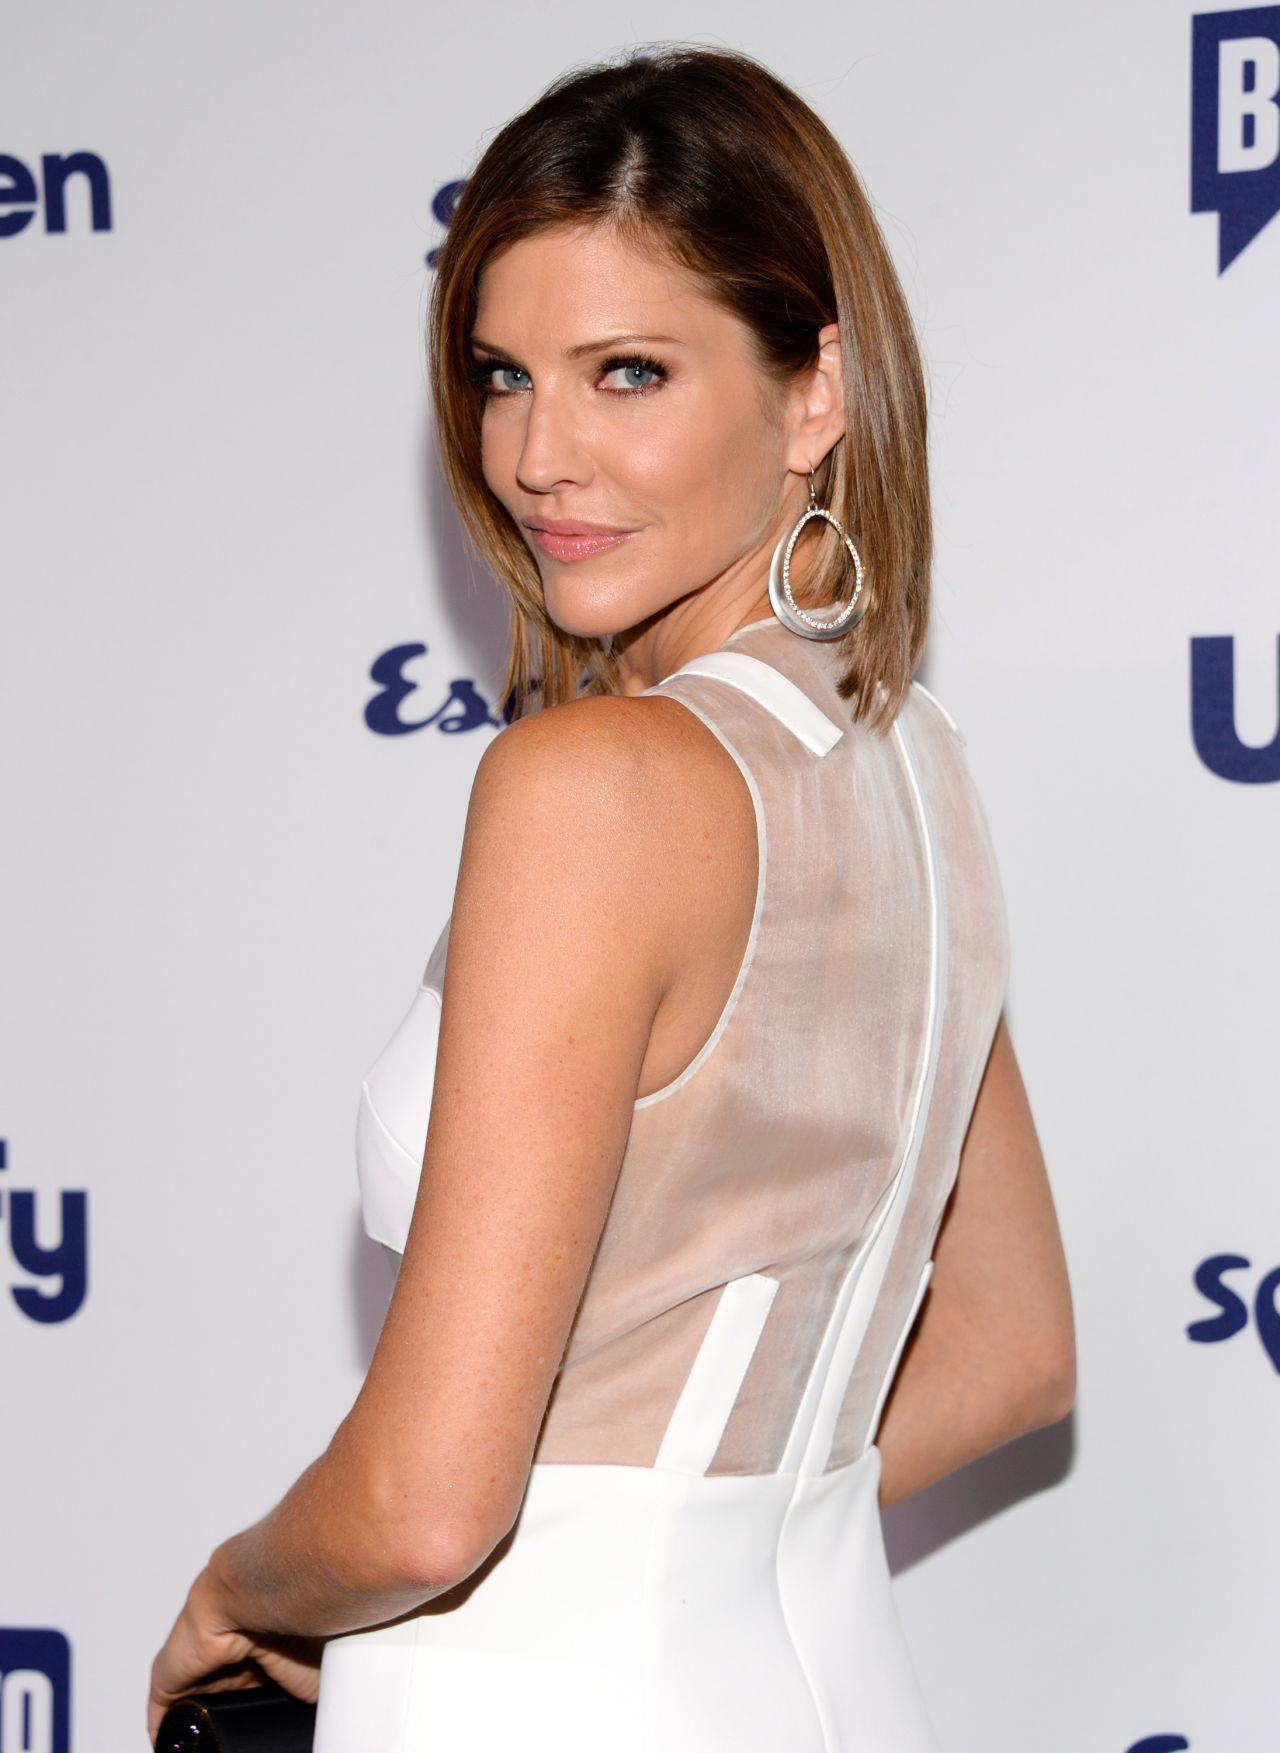 Tricia Helfer 2014 Nbcuniversal Cable Entertainment Upfronts